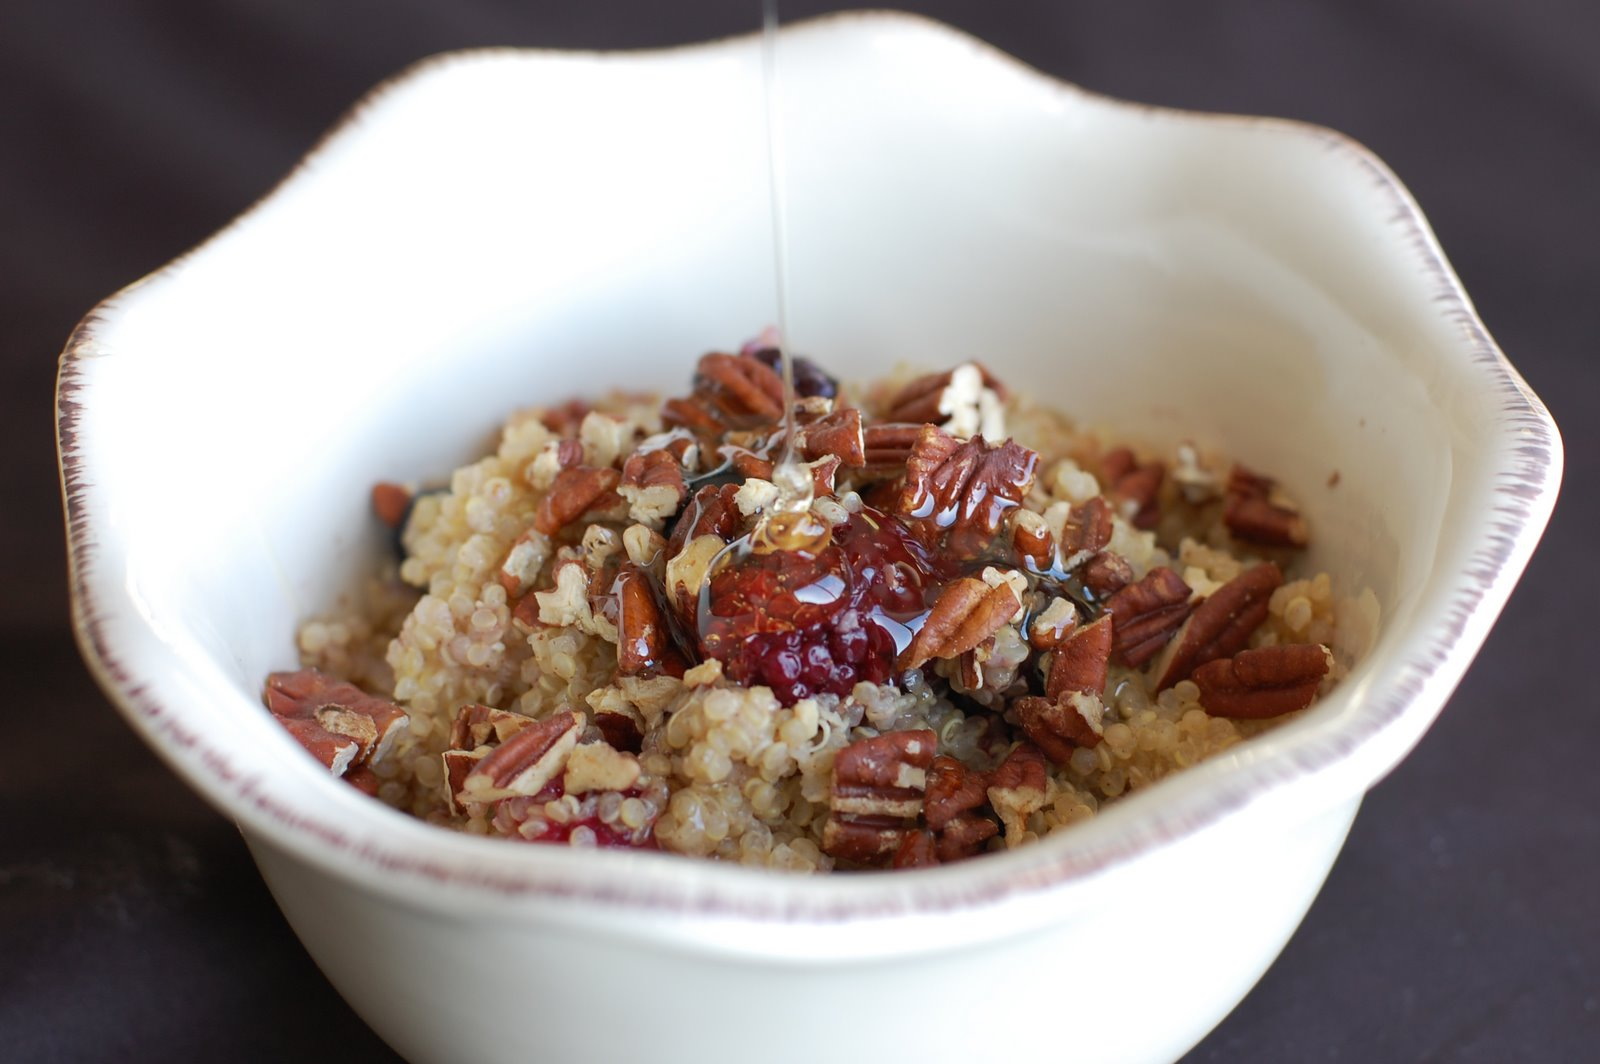 Barefoot and Baking: Warm and Nutty Cinnamon Quinoa